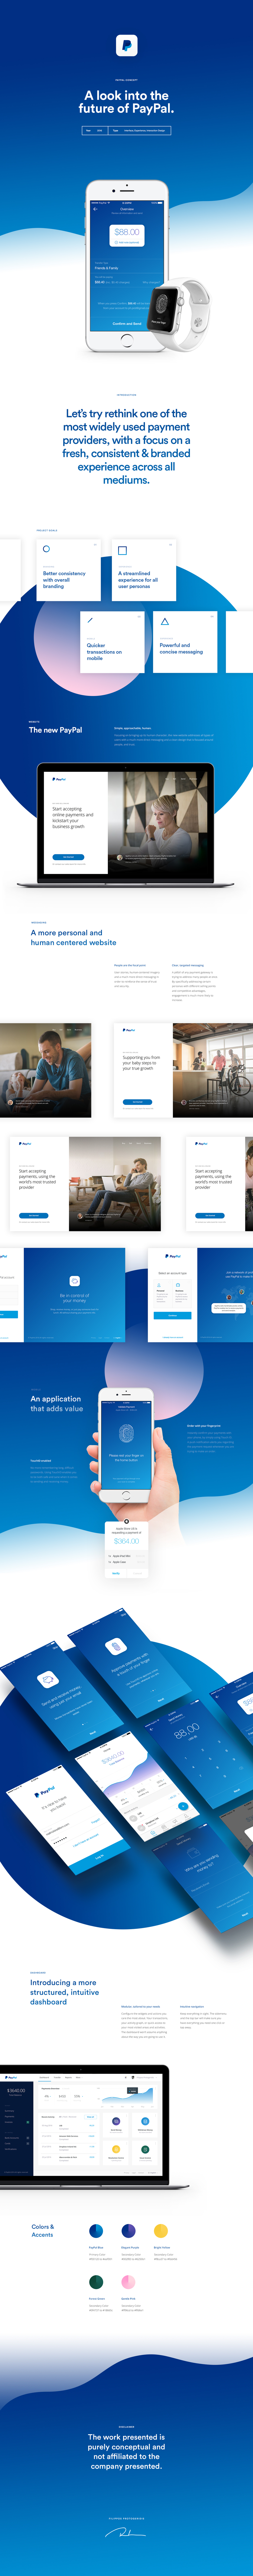 paypal redesign UI ux design Web mobile interaction